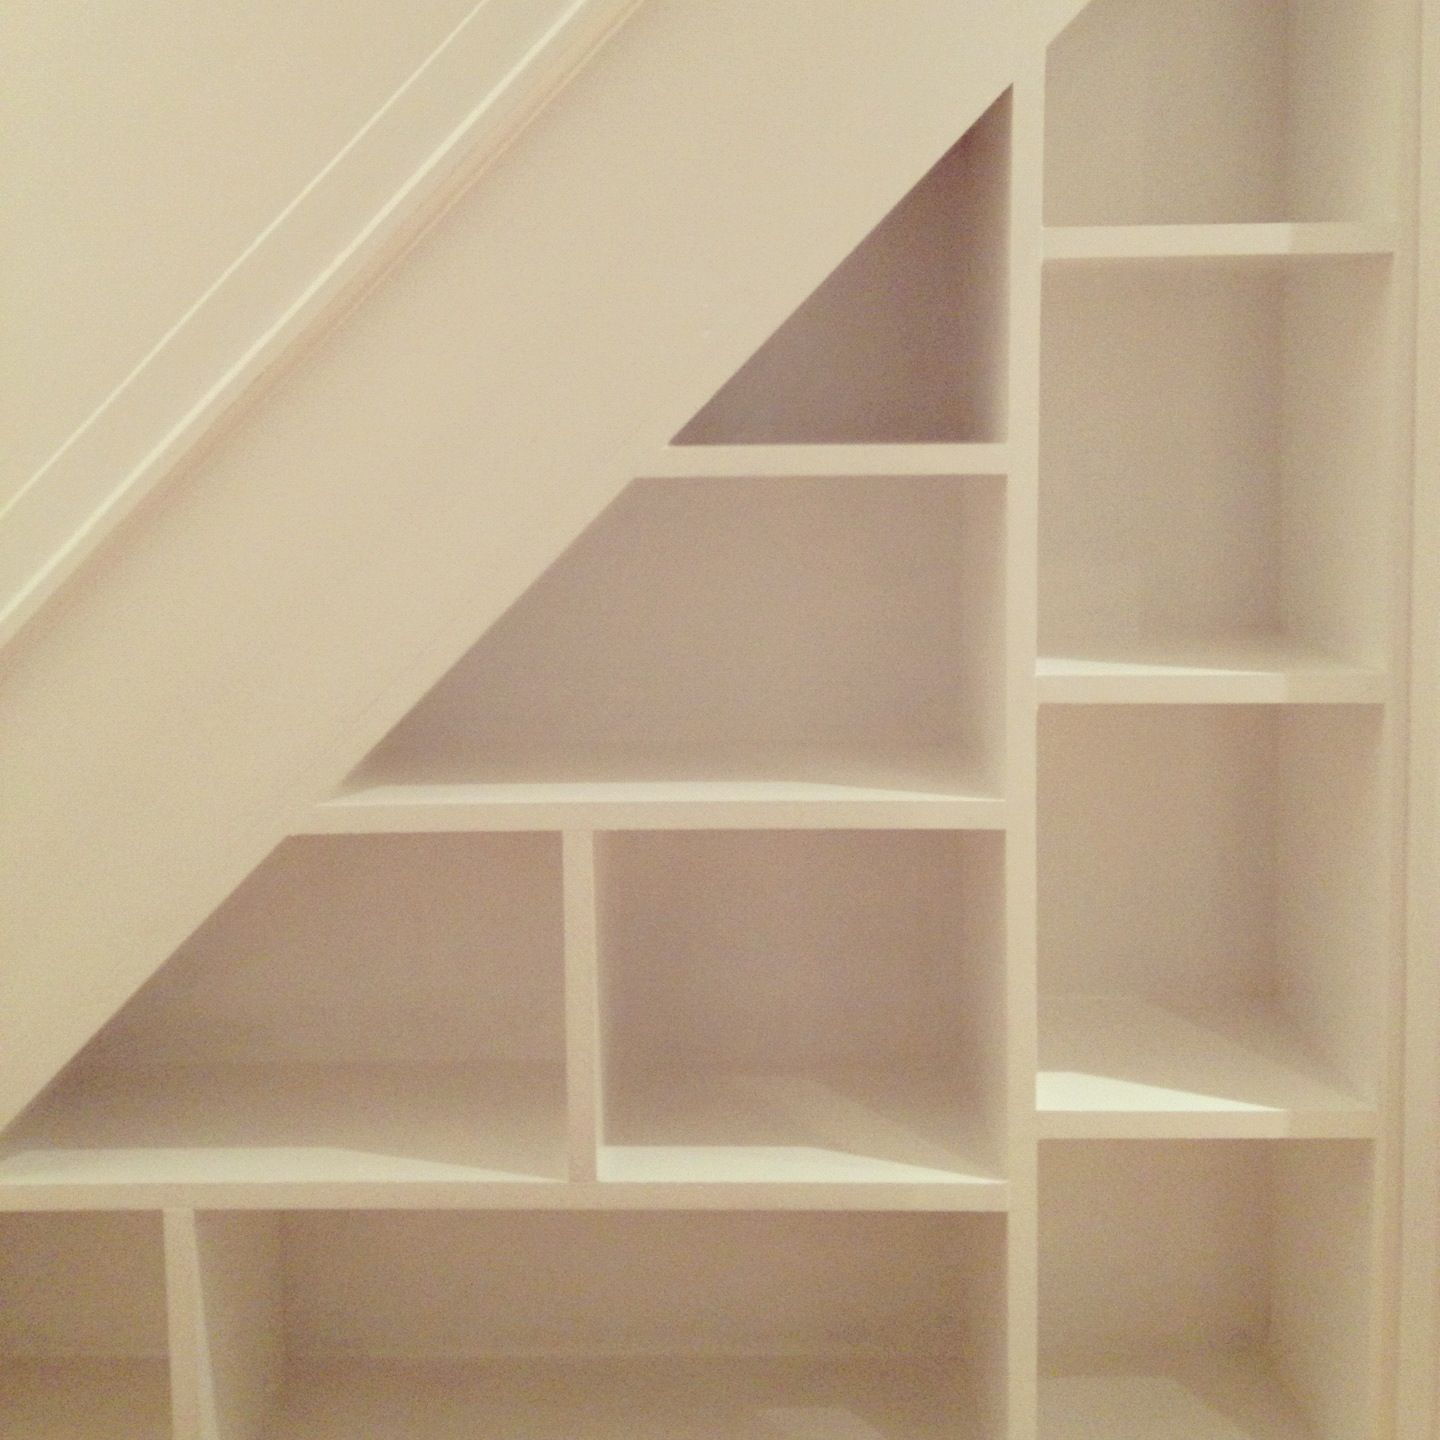 My Under Stairs Book Shoe Shelves Optimises The Storage